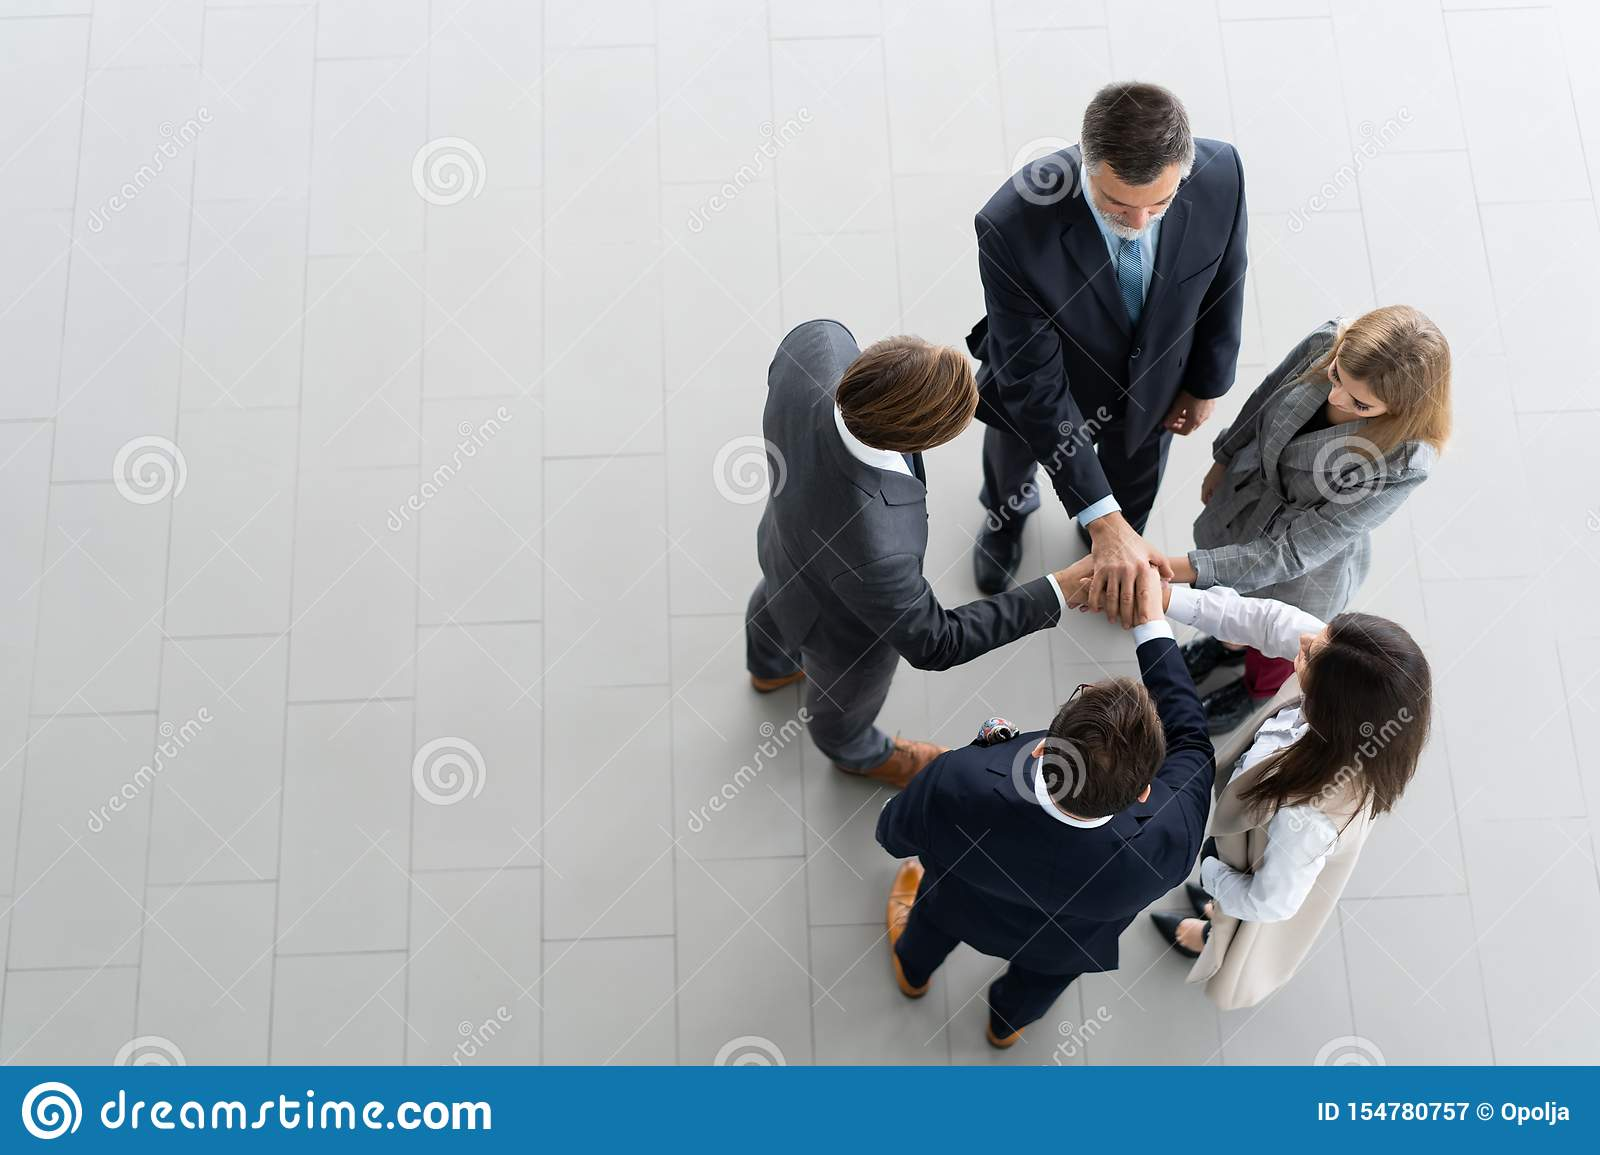 High angle view of a team of united coworkers standing with their hands together in a huddle in the modern office